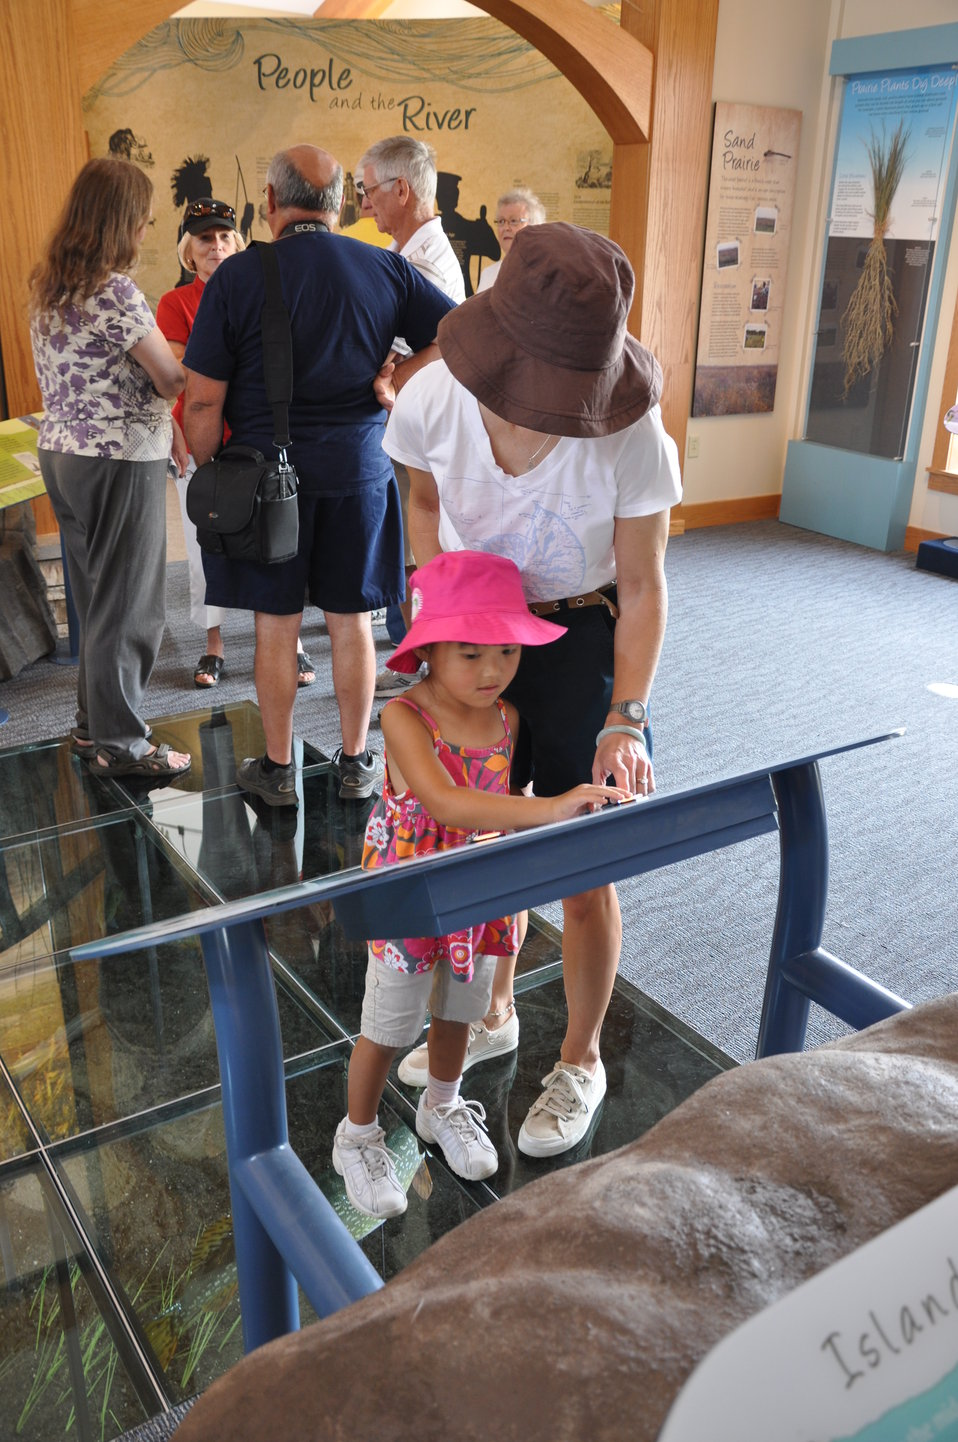 Exploring exhibits at La Crosse visitor center